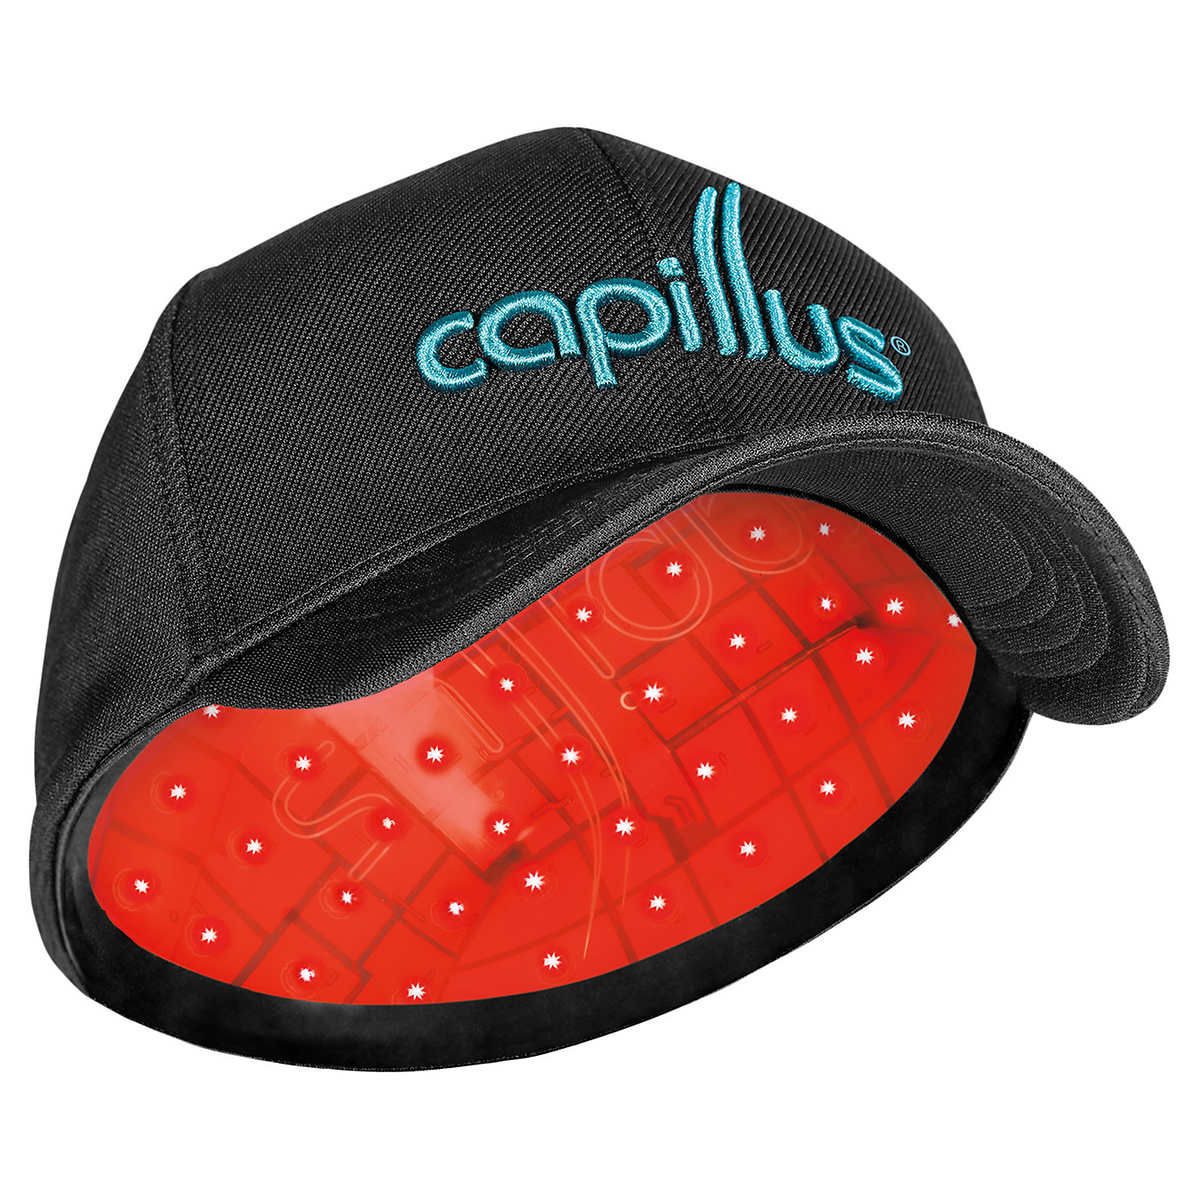 Capillus82 Laser Therapy Hair Regrowth Cap for Treatment of Hair